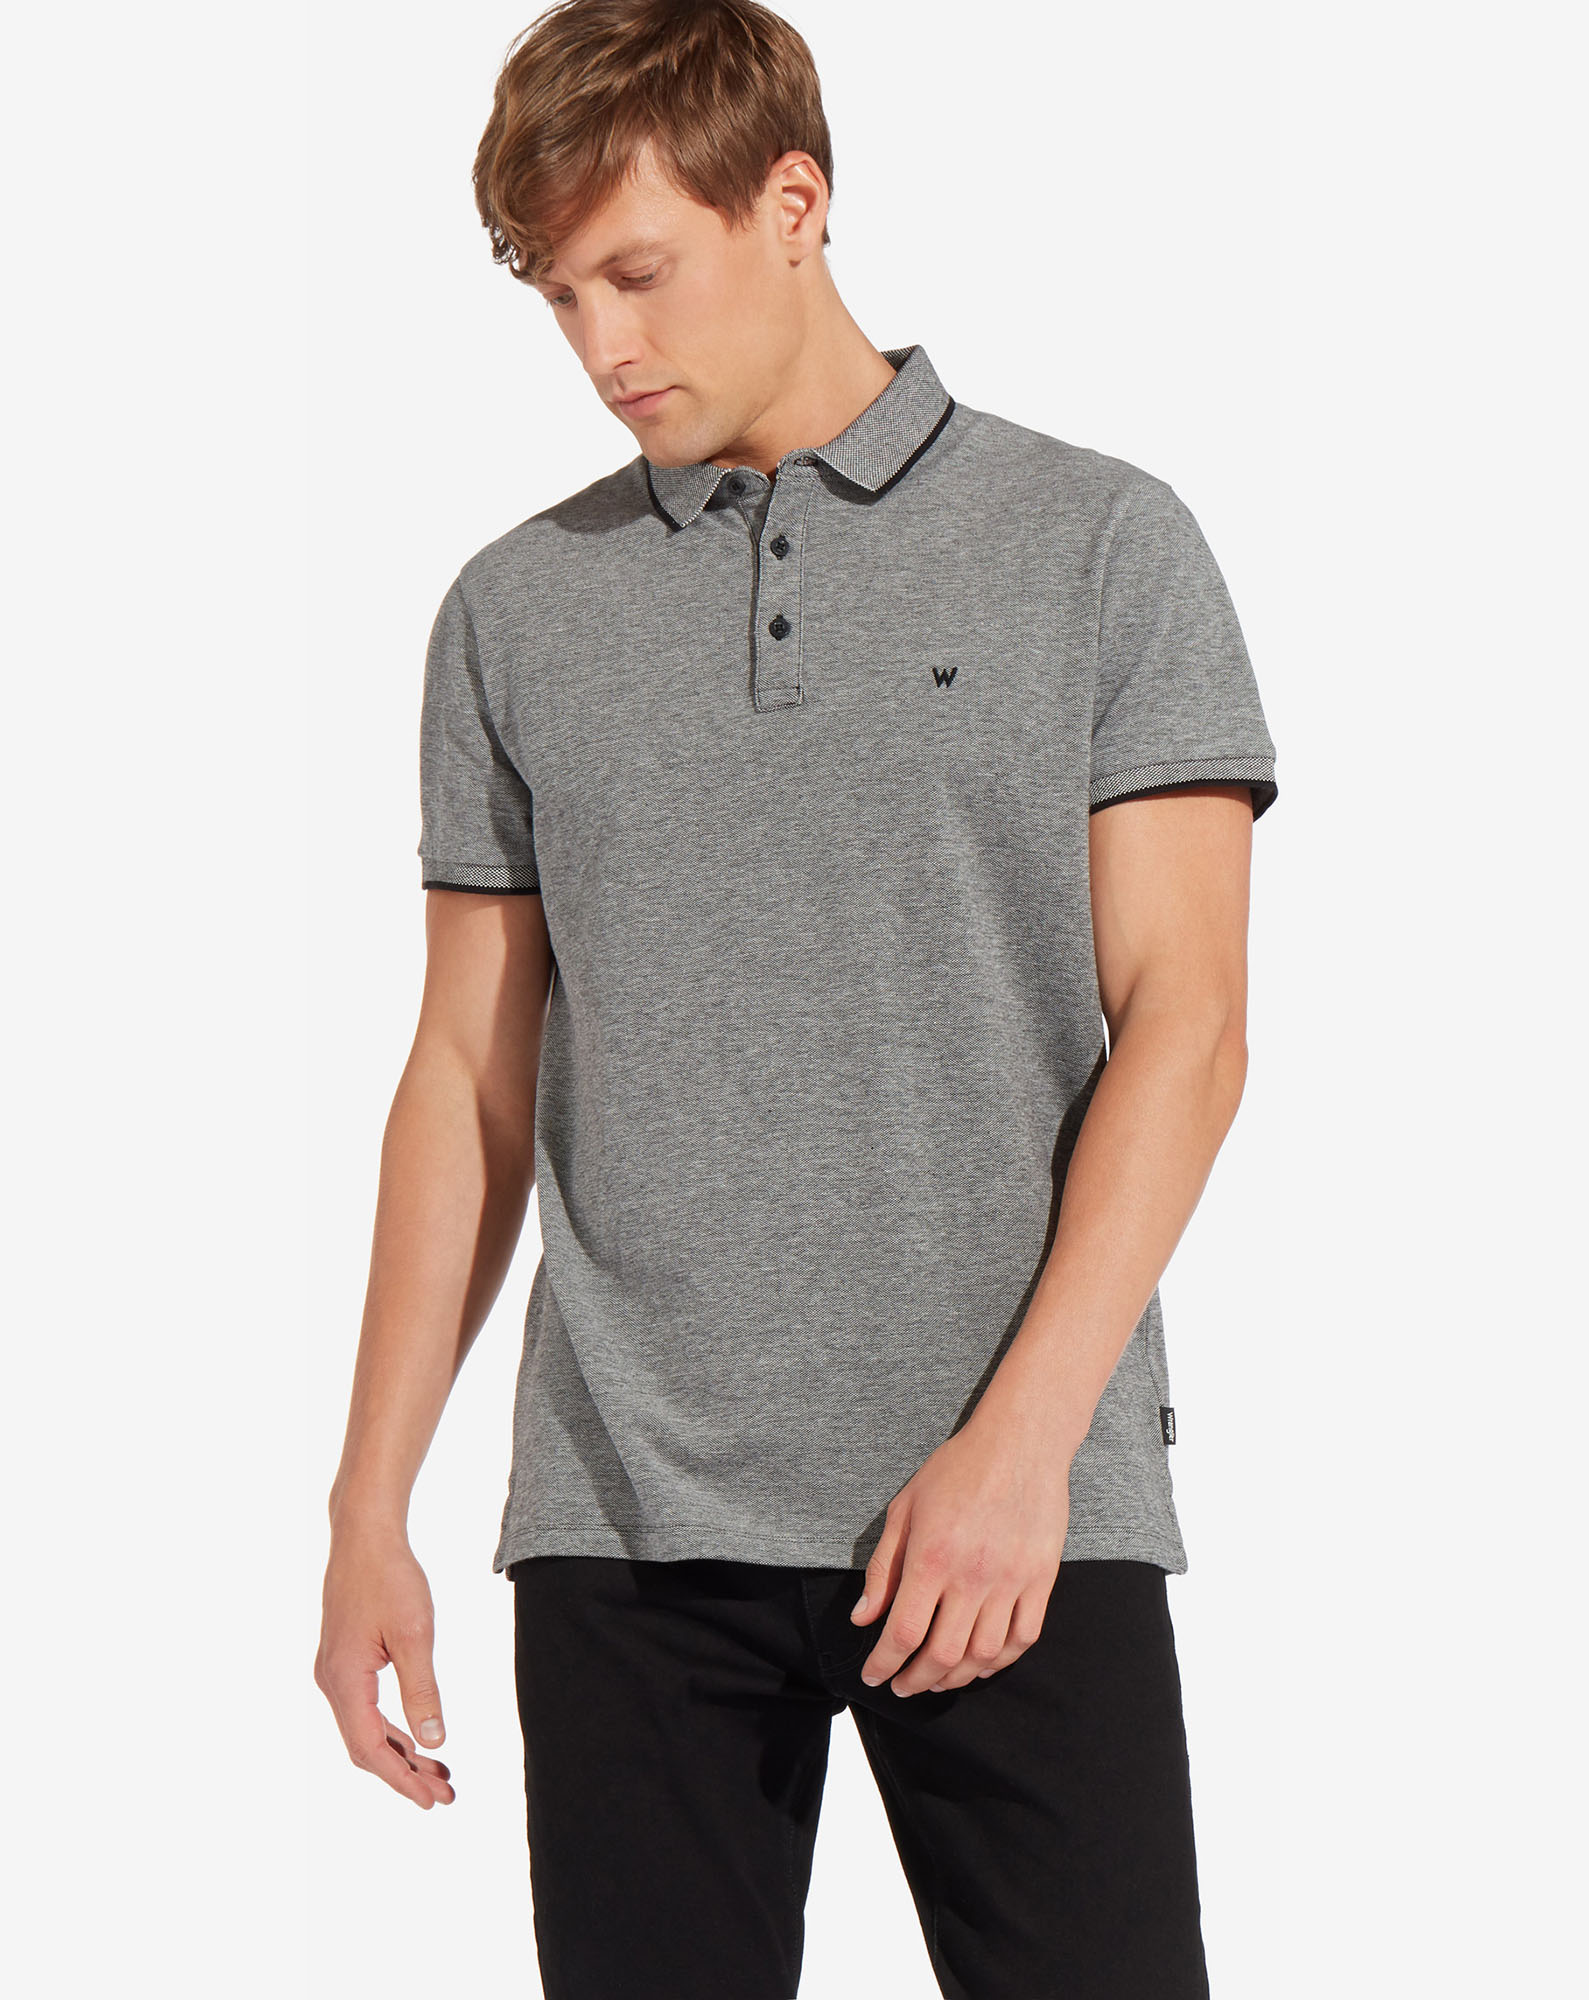 REFINED POLO BLACK